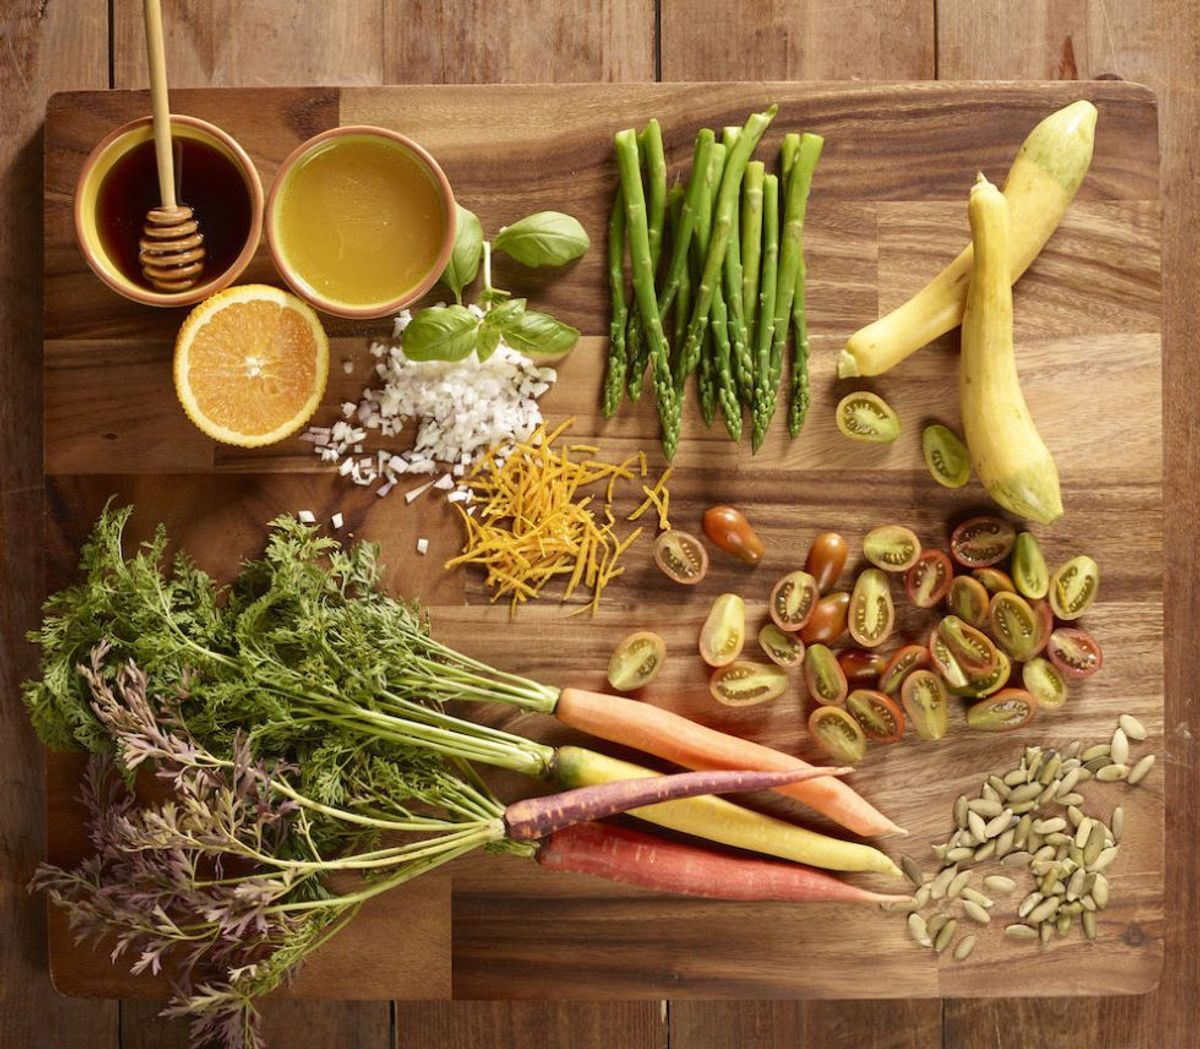 Why Using Separate Cutting Boards for Meat and Produce is Important?